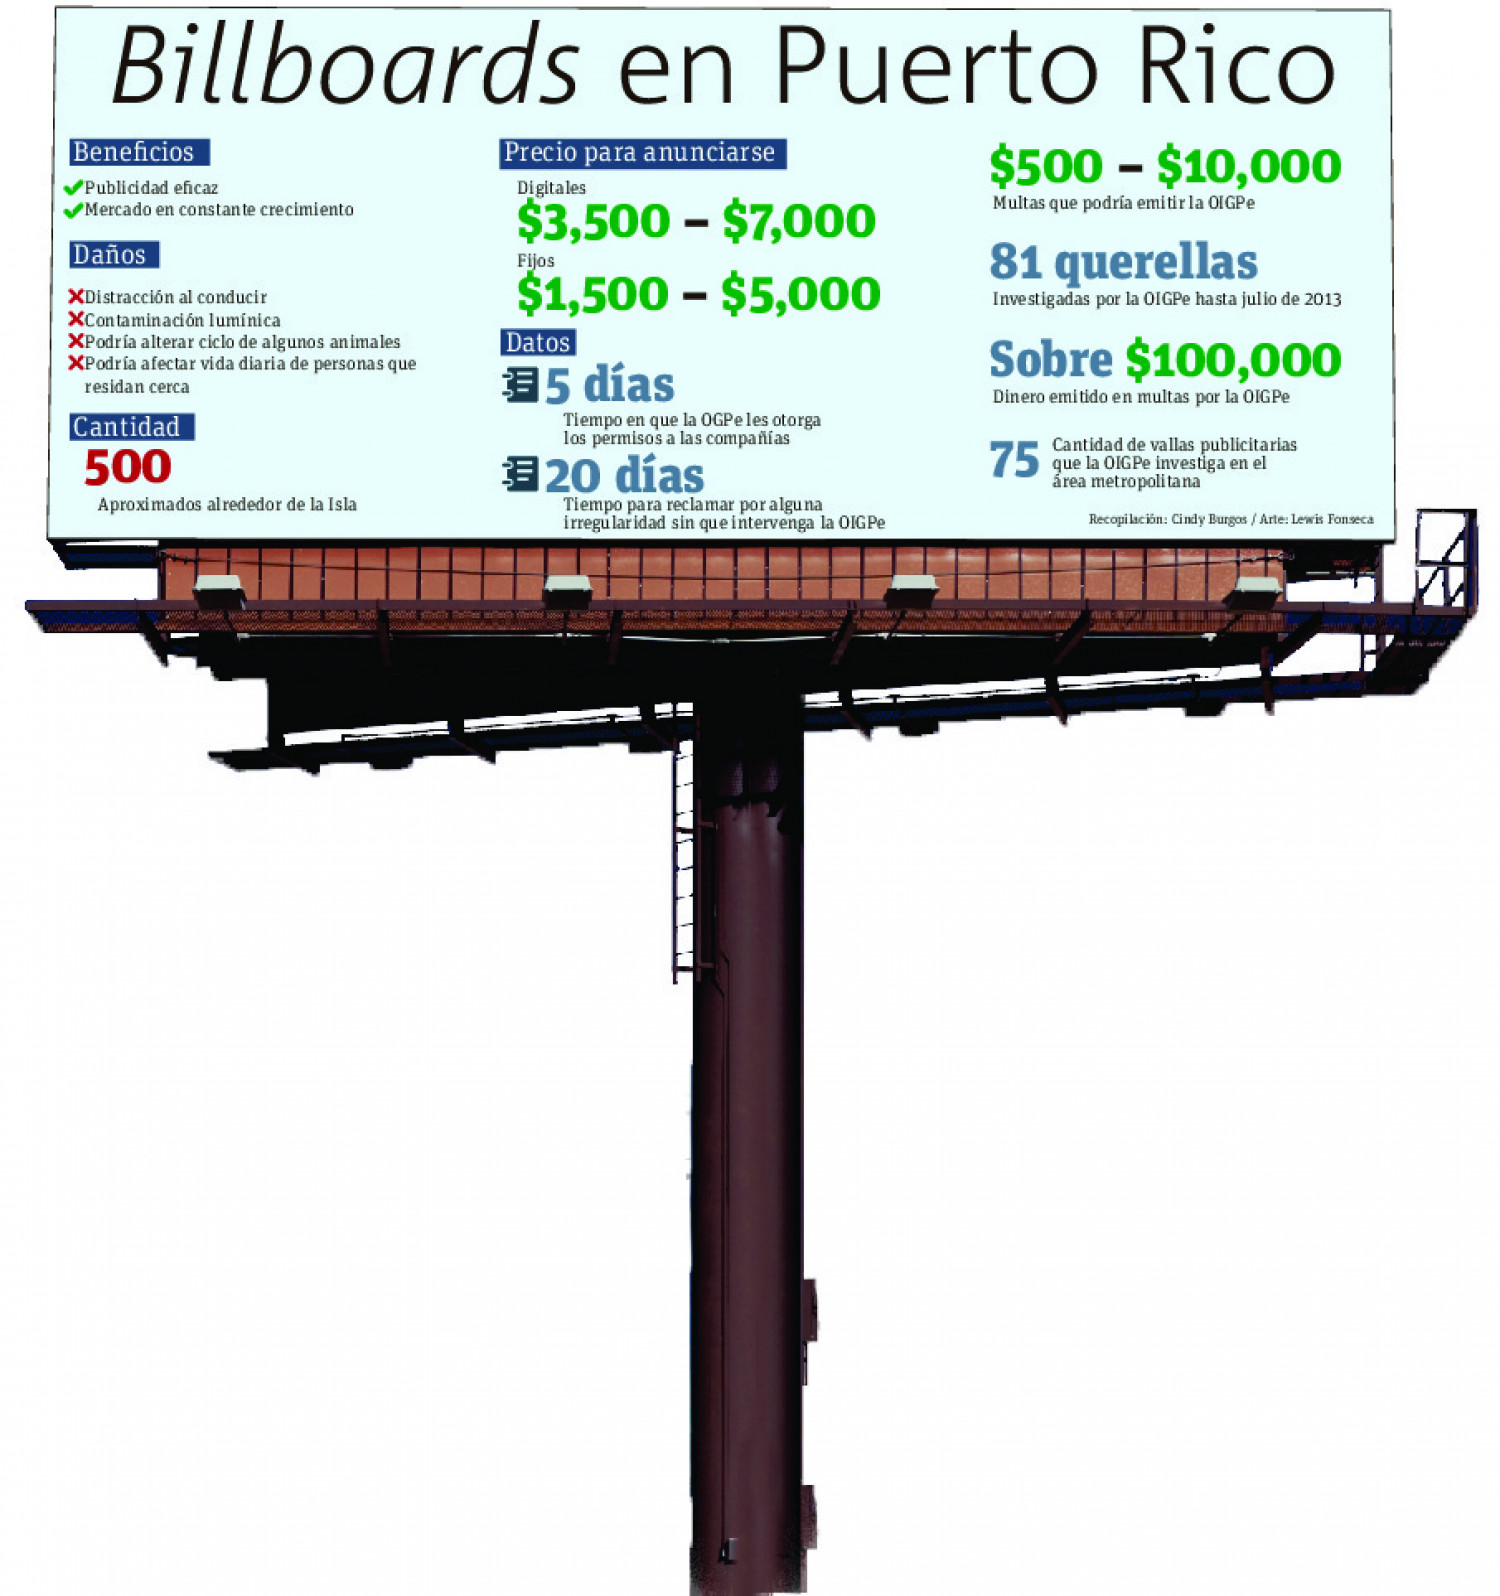 Billboards en Puerto Rico  Infographic